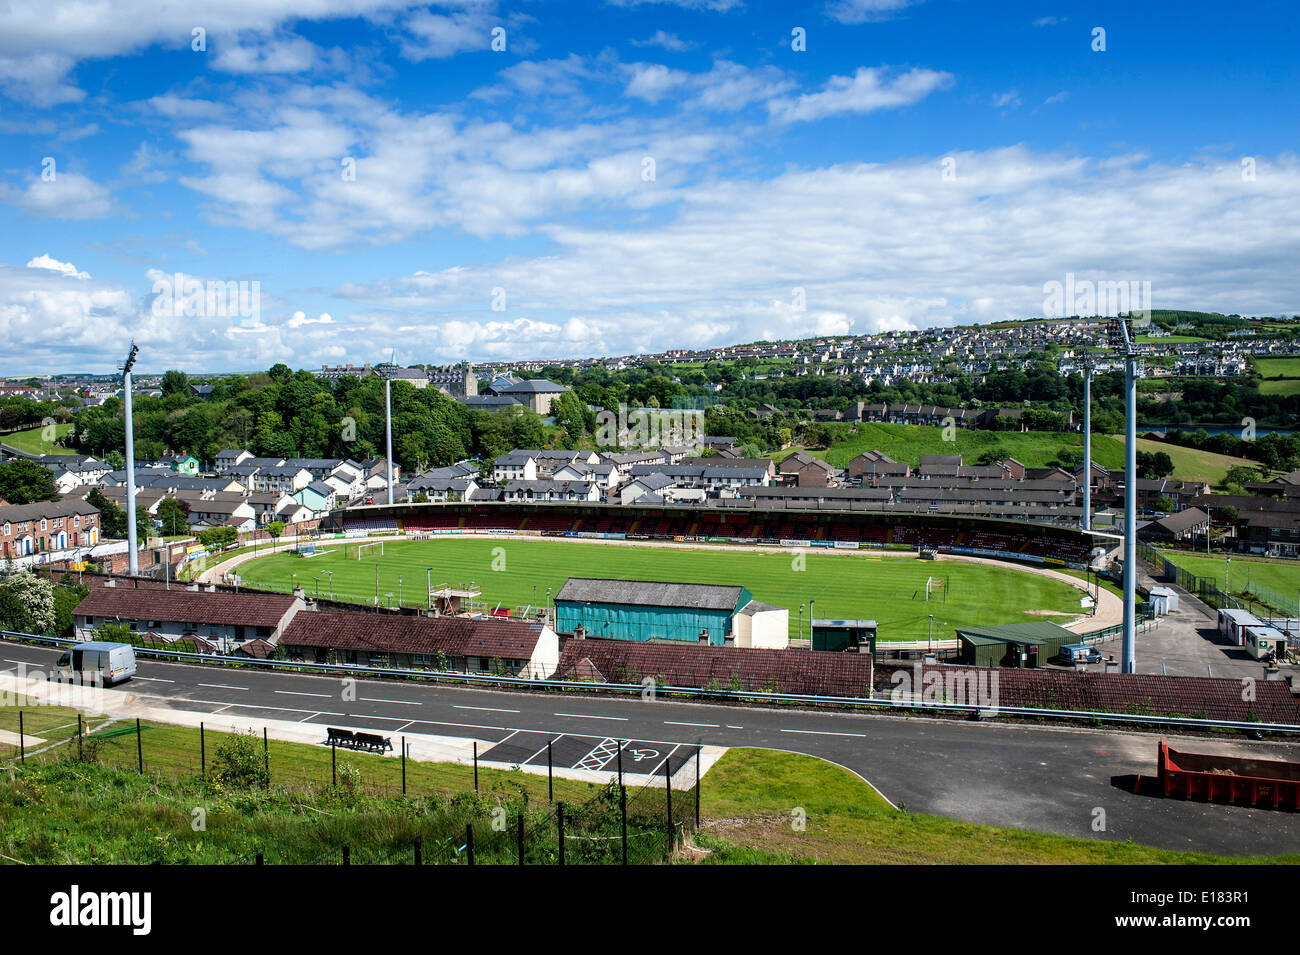 Brandywell Stadium, home of Airtricity Premier League club Derry City - Stock Image